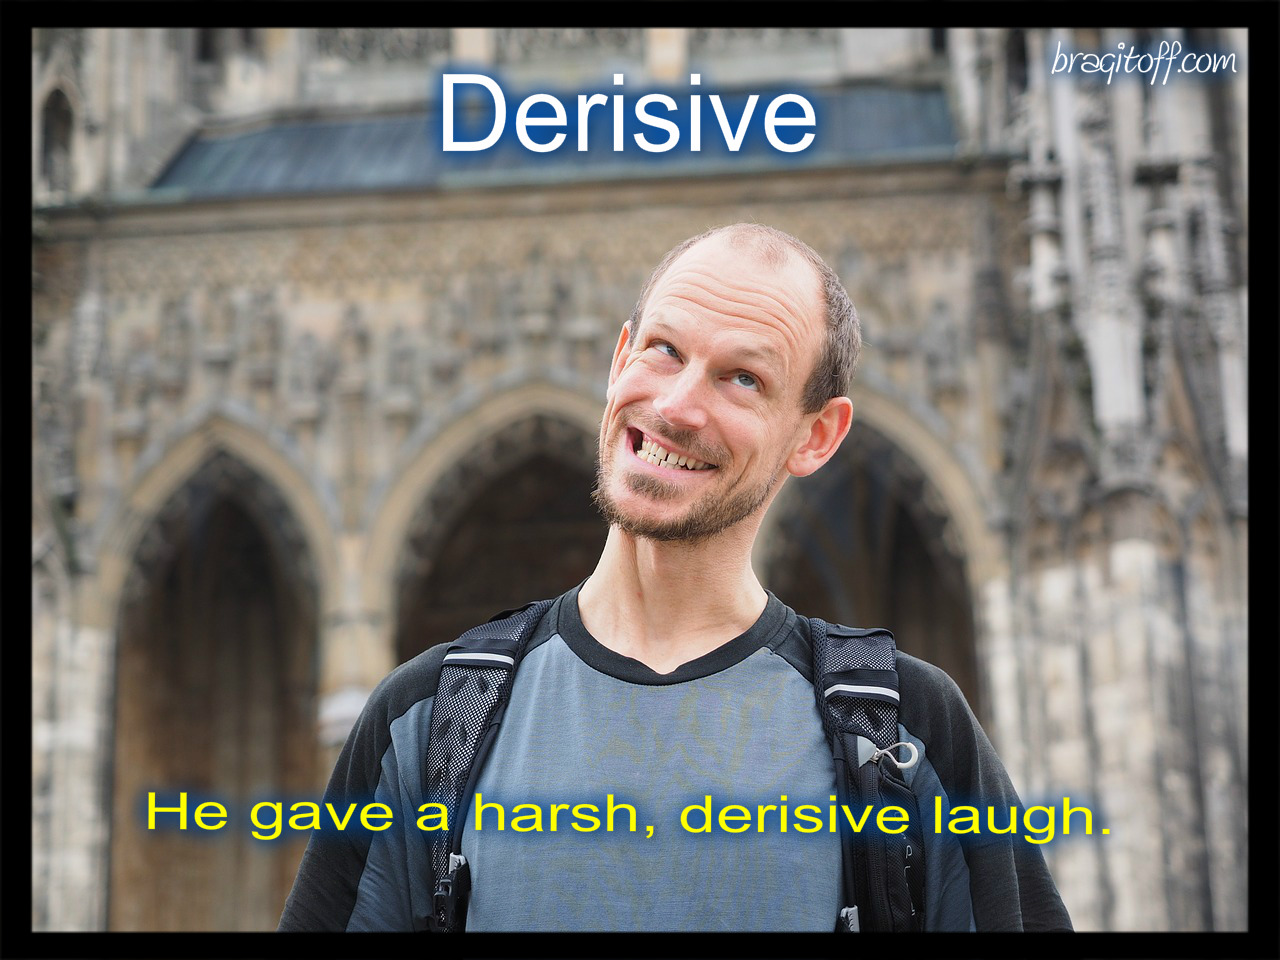 derisive laugh sentence image for the word visual meaning definition dictionary a mad man laughing